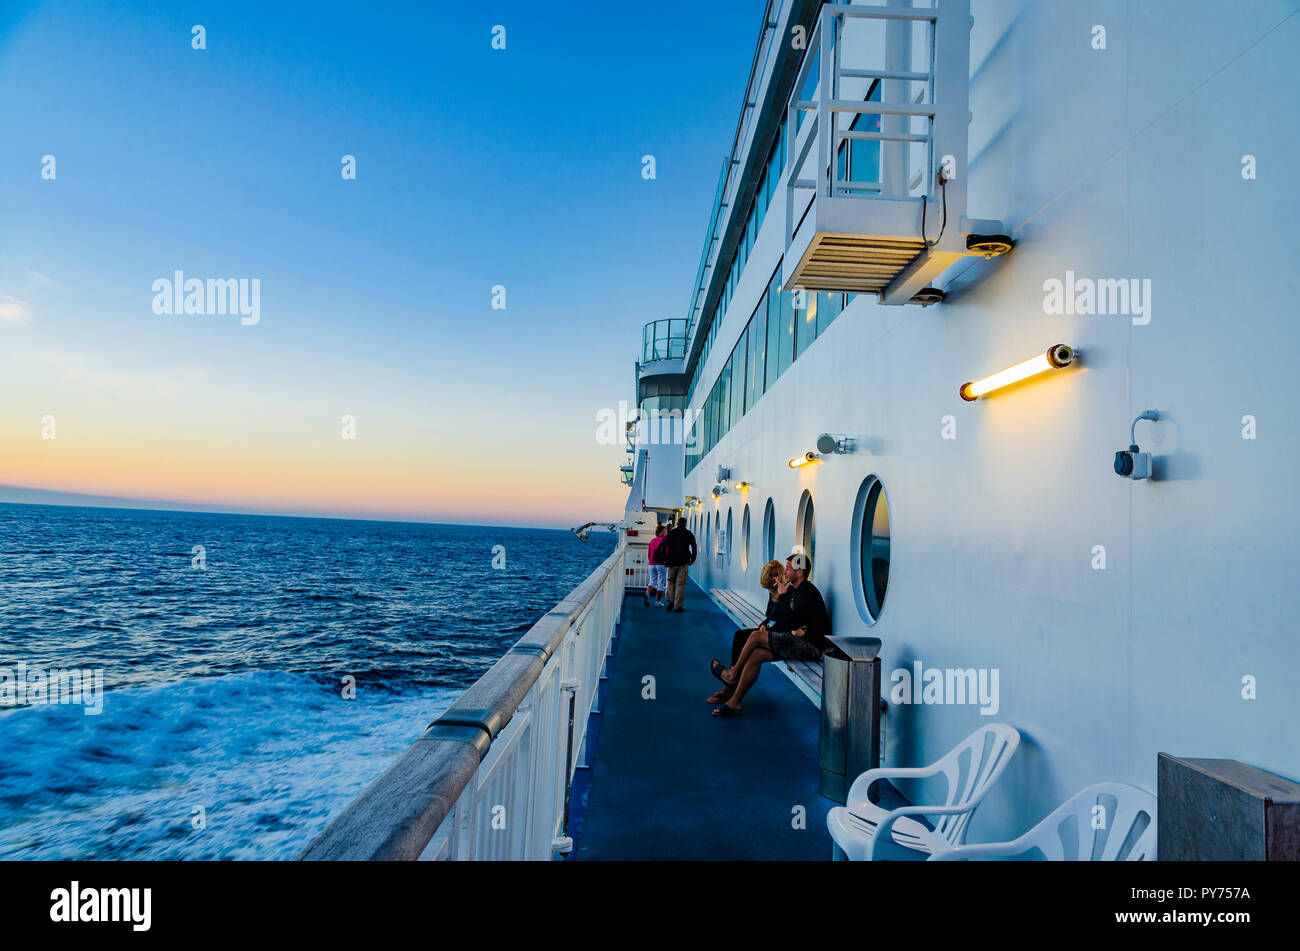 Dusk sailing in the Bay of Biscay. Ferry sailing in direction of Portsmouth, sailing in Bay of Biscay. Brittany Ferries. Europe - Stock Image